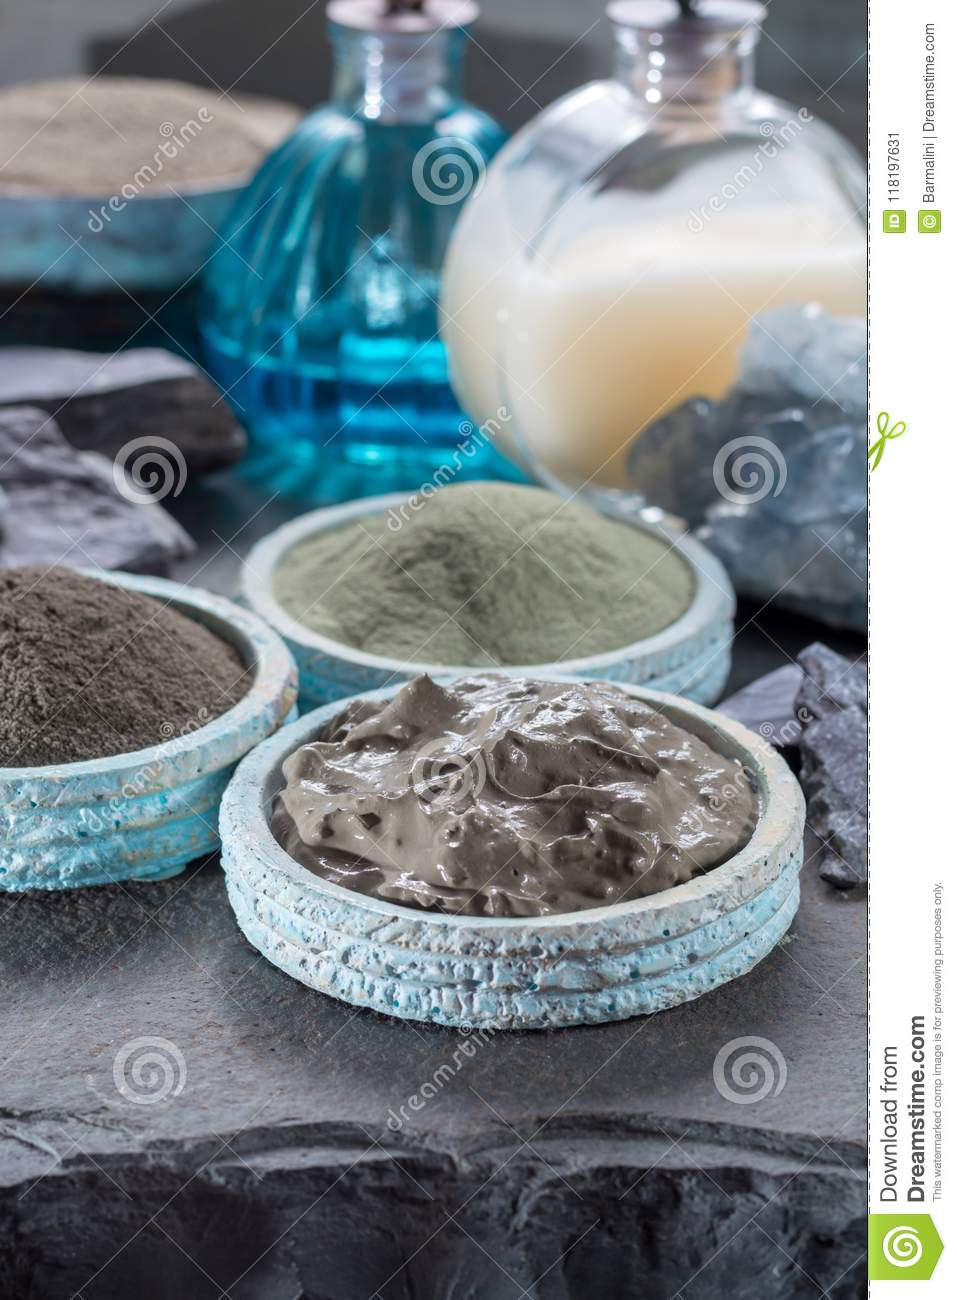 Ancient nature minerals, different types of clay used for skincare, spa treatments, face masks, gray, black, green and blue